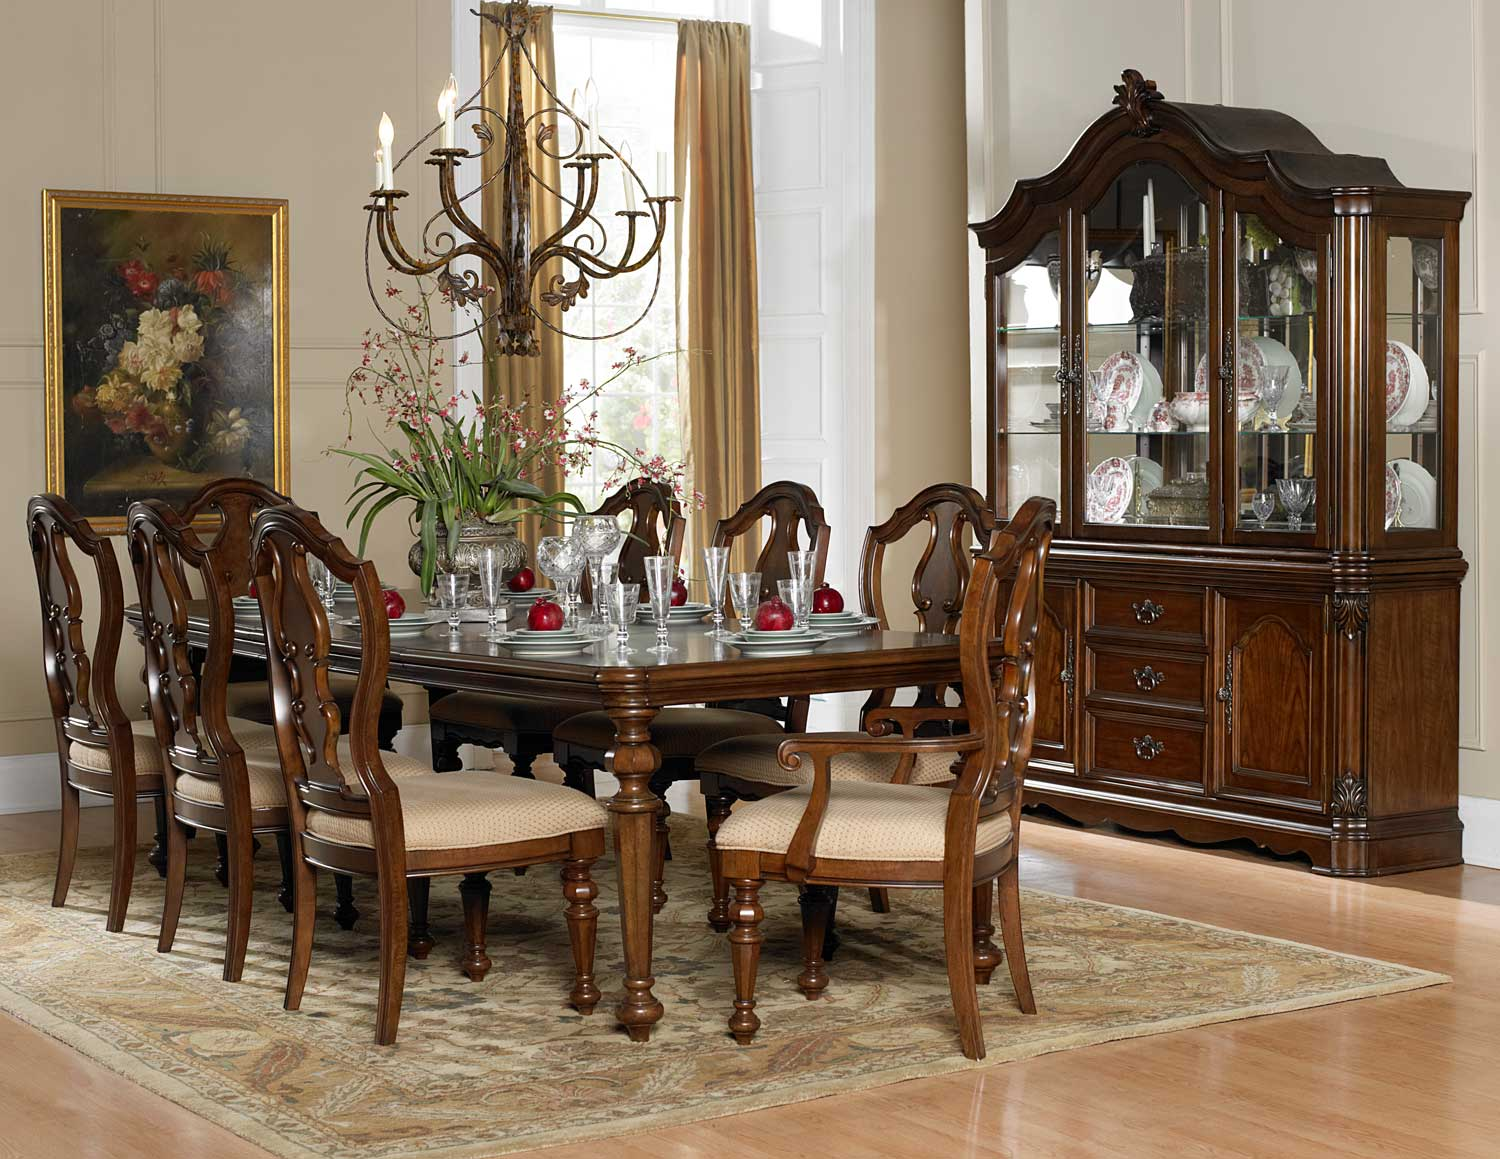 Homelegance Montrose Dining Set - Warm Brown